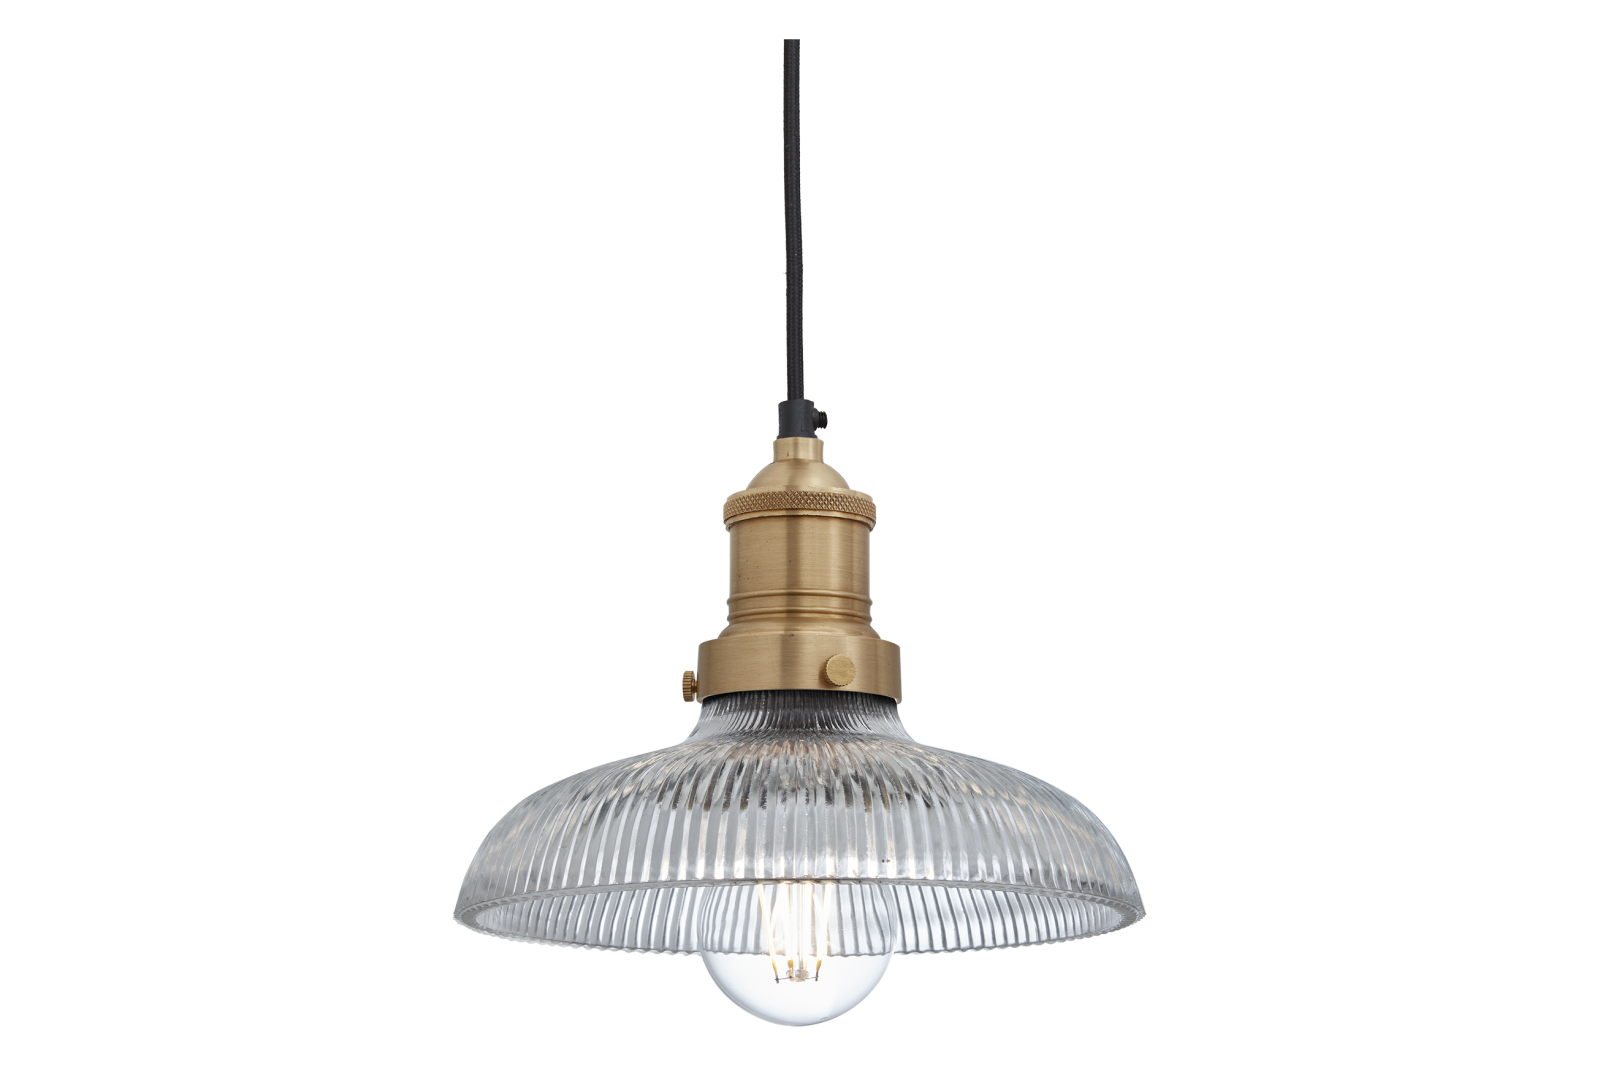 Brooklyn Glass Dome Pendant Light - 8 Inch Brooklyn Glass Dome Pendant - 8 Inch - Brass Holder